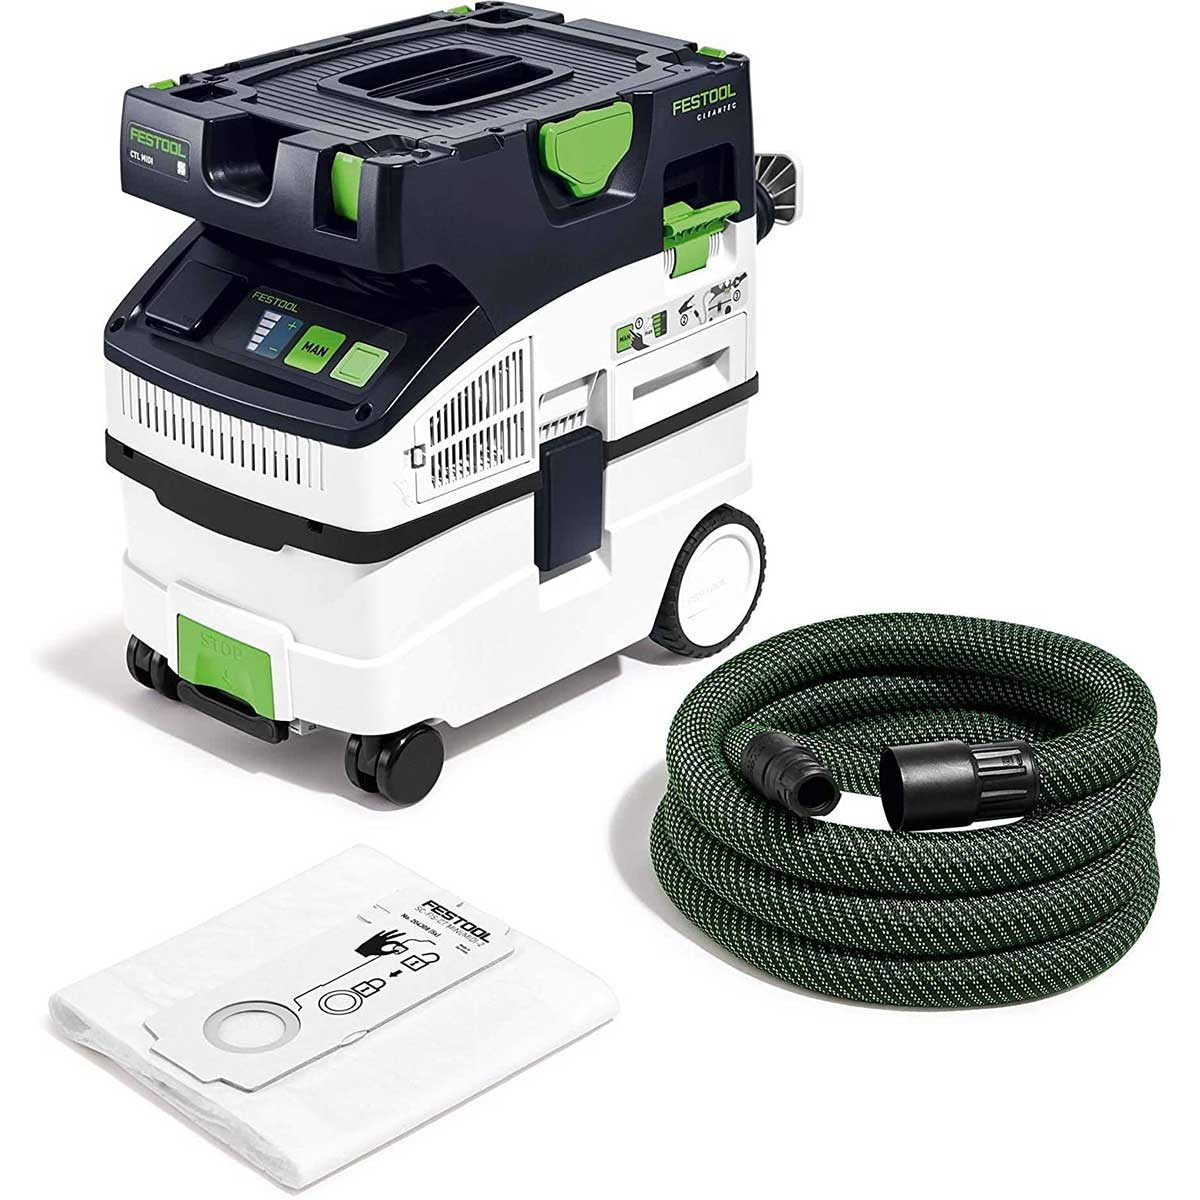 Festool bluetooth vacuum